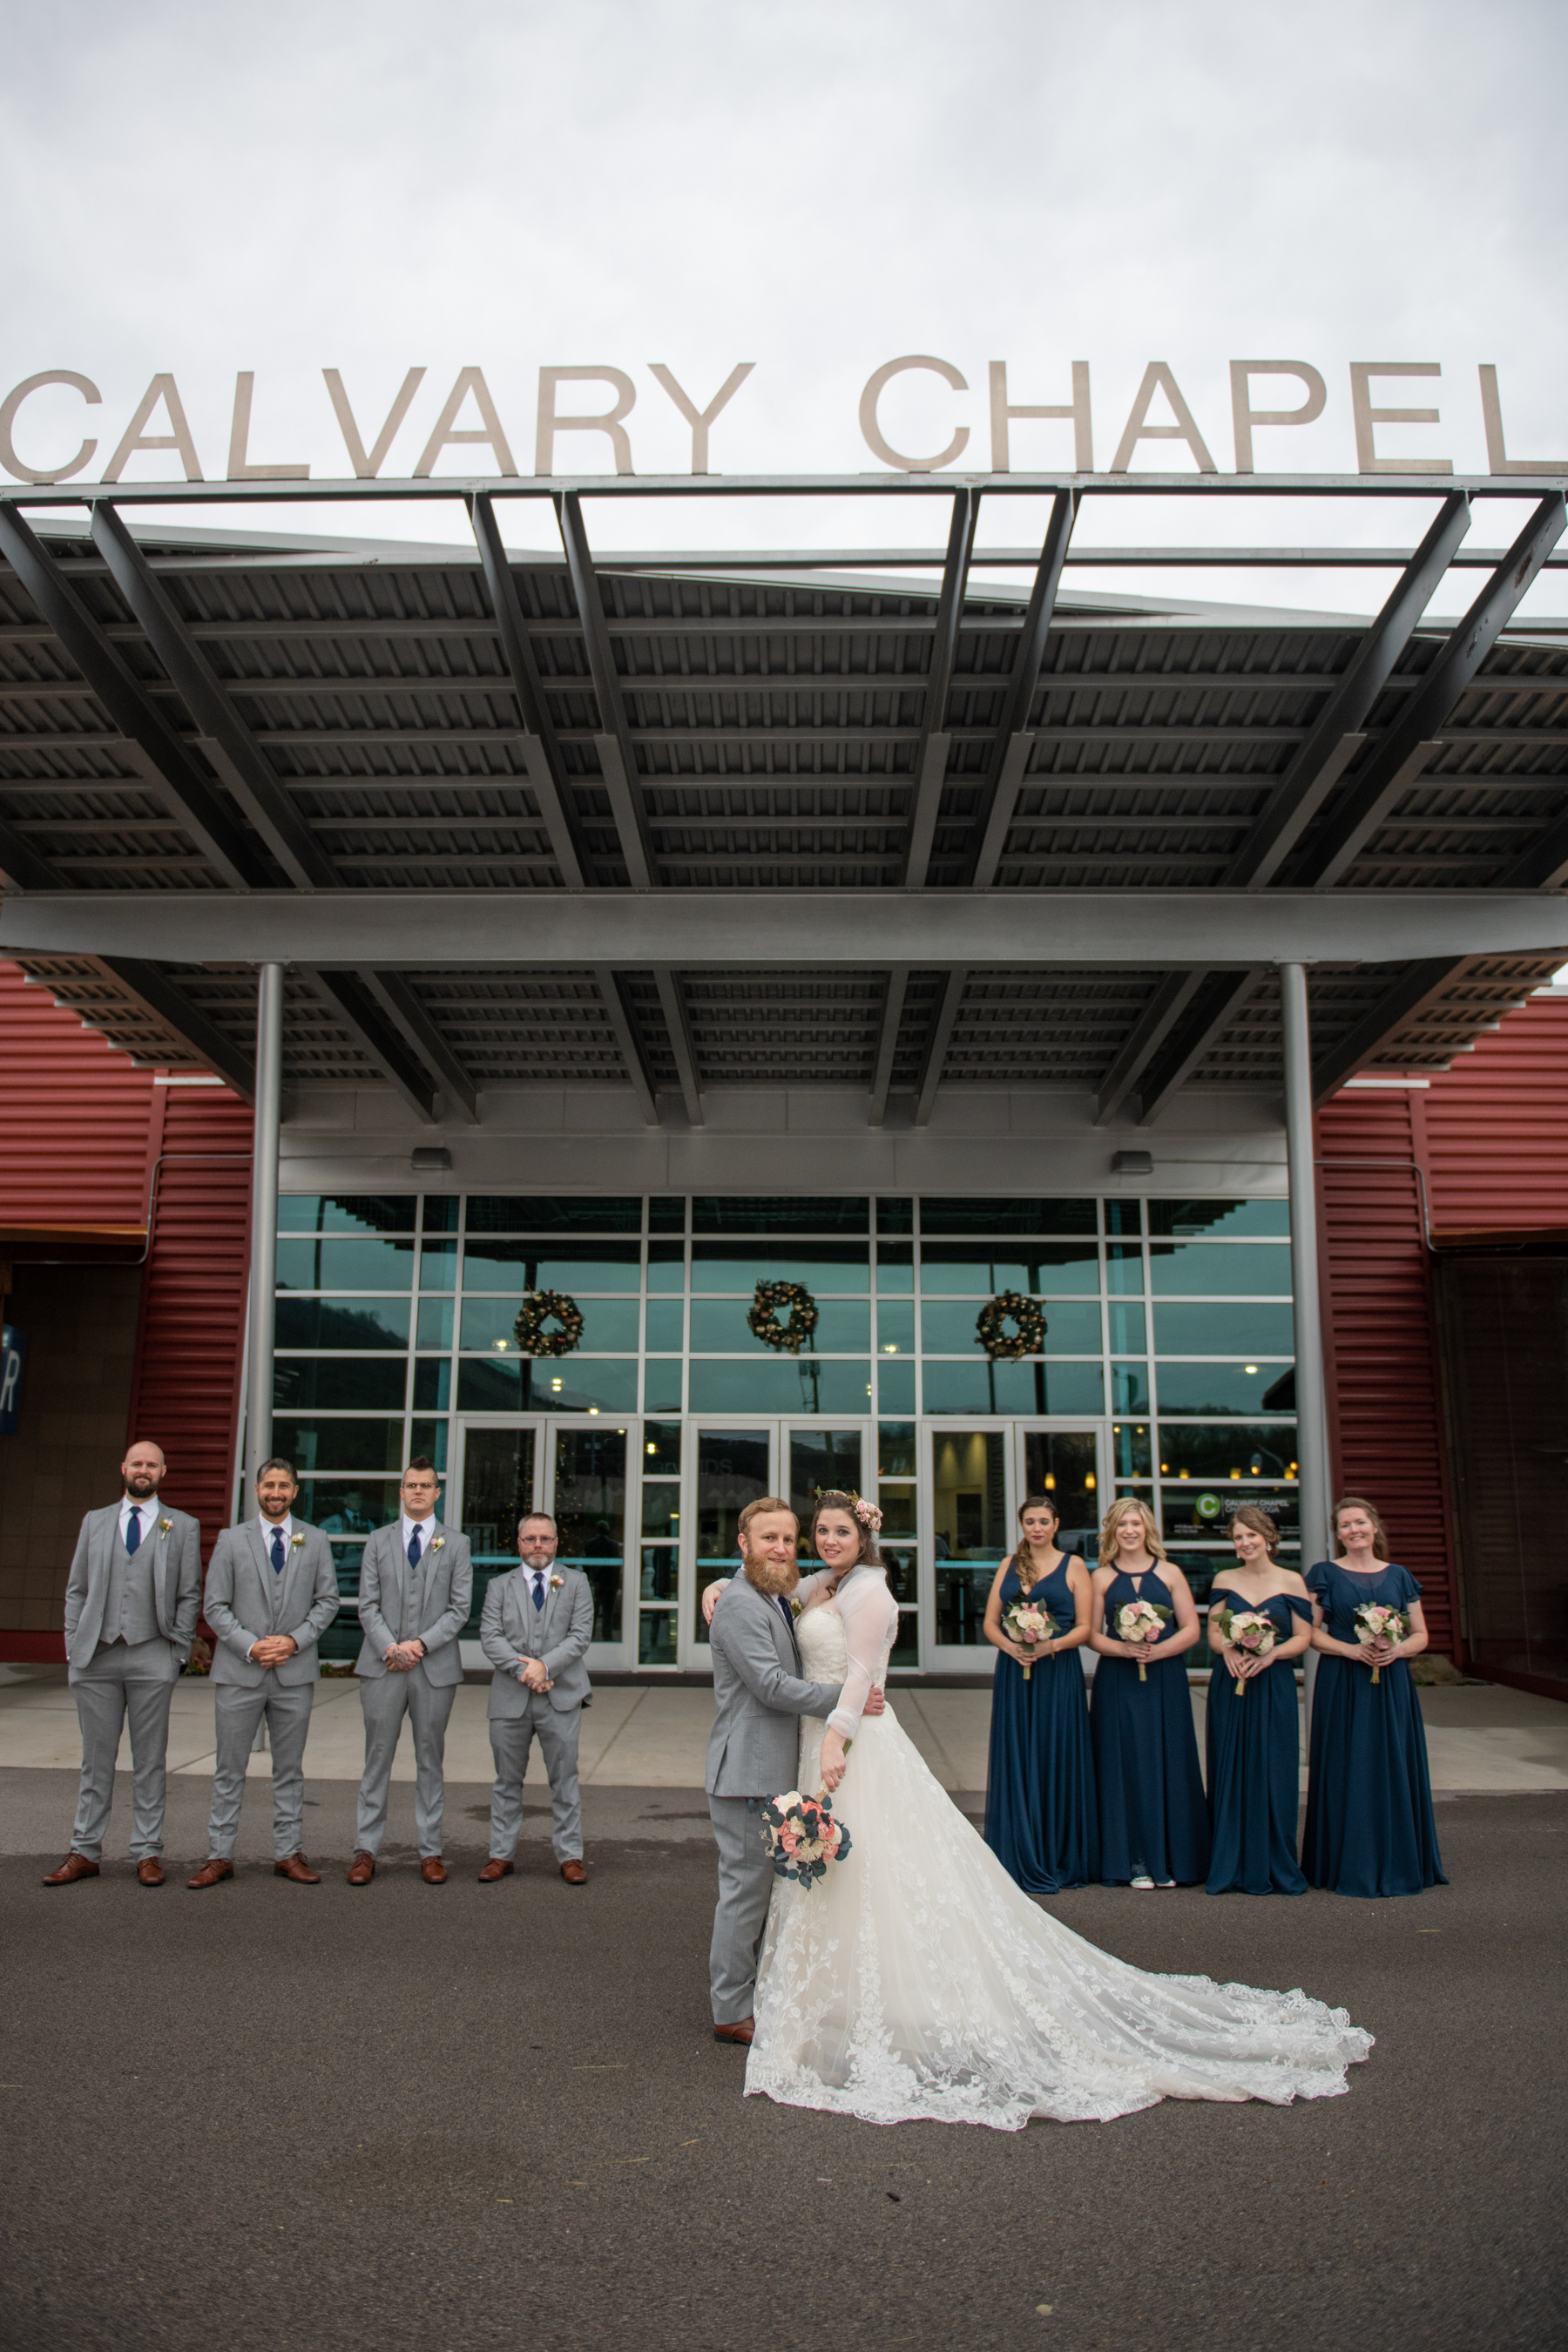 Calvary-Chapel-Chattanooga-Wedding-25.jpg